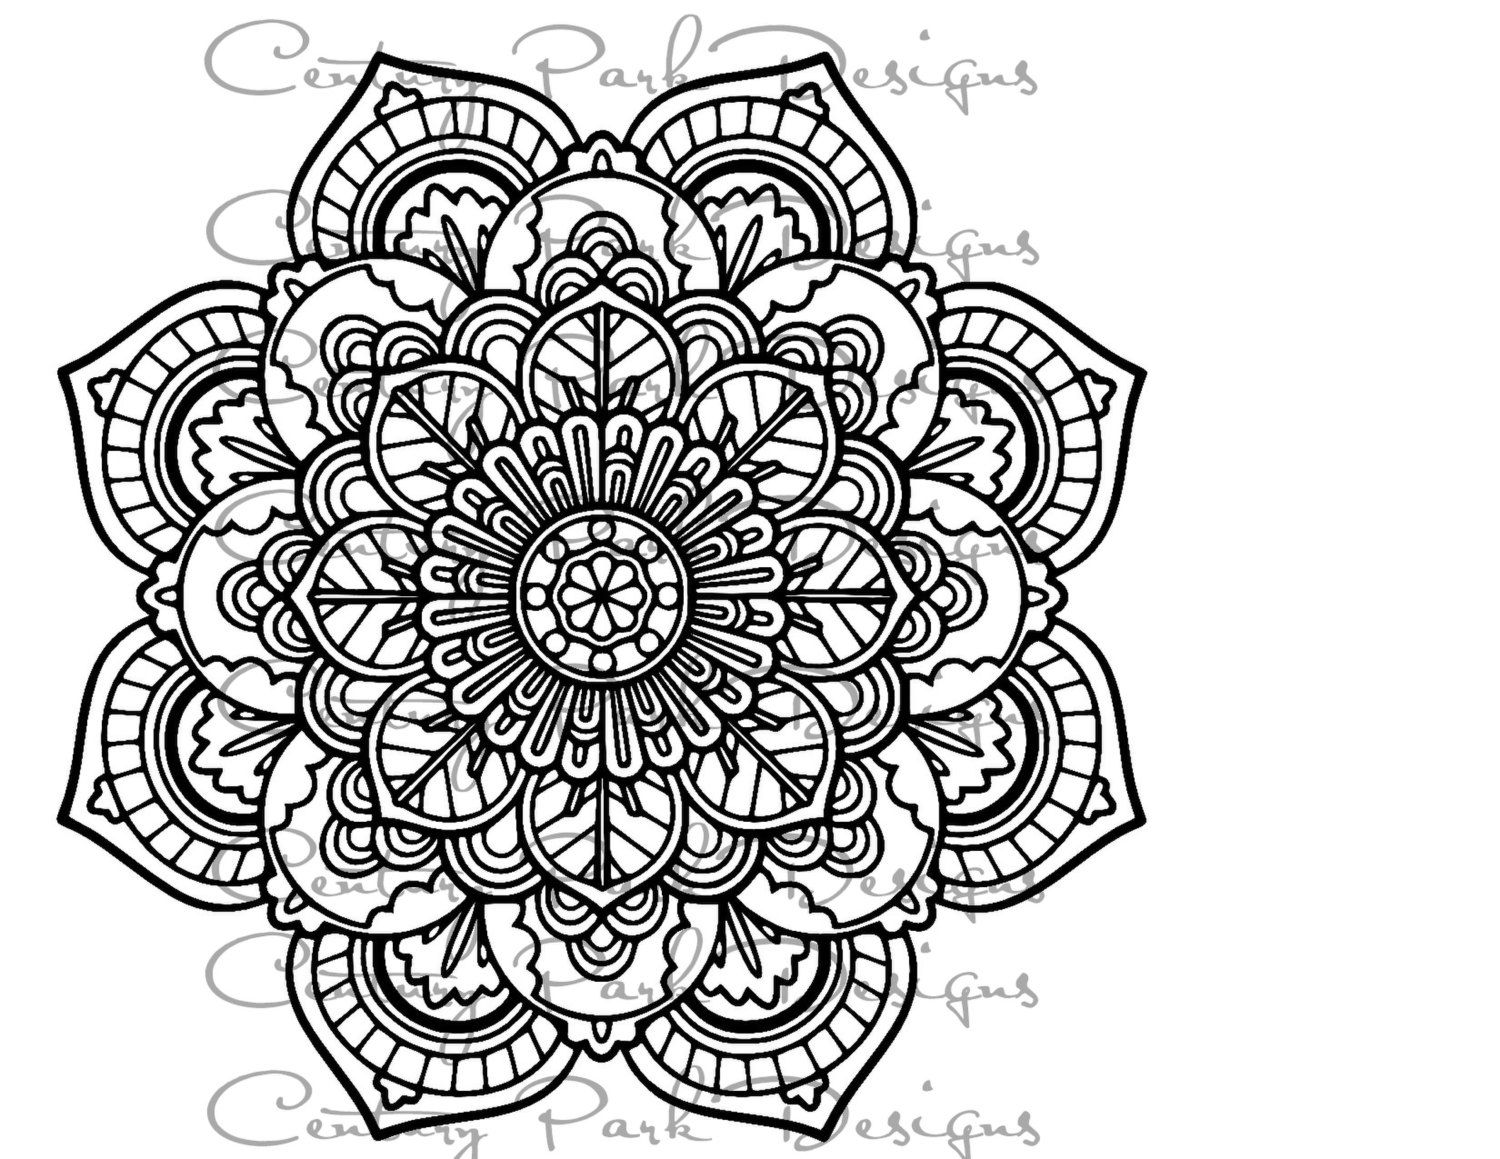 cute mandala coloring pages cute floral mandala simple mandalas 100 mandalas zen cute mandala coloring pages